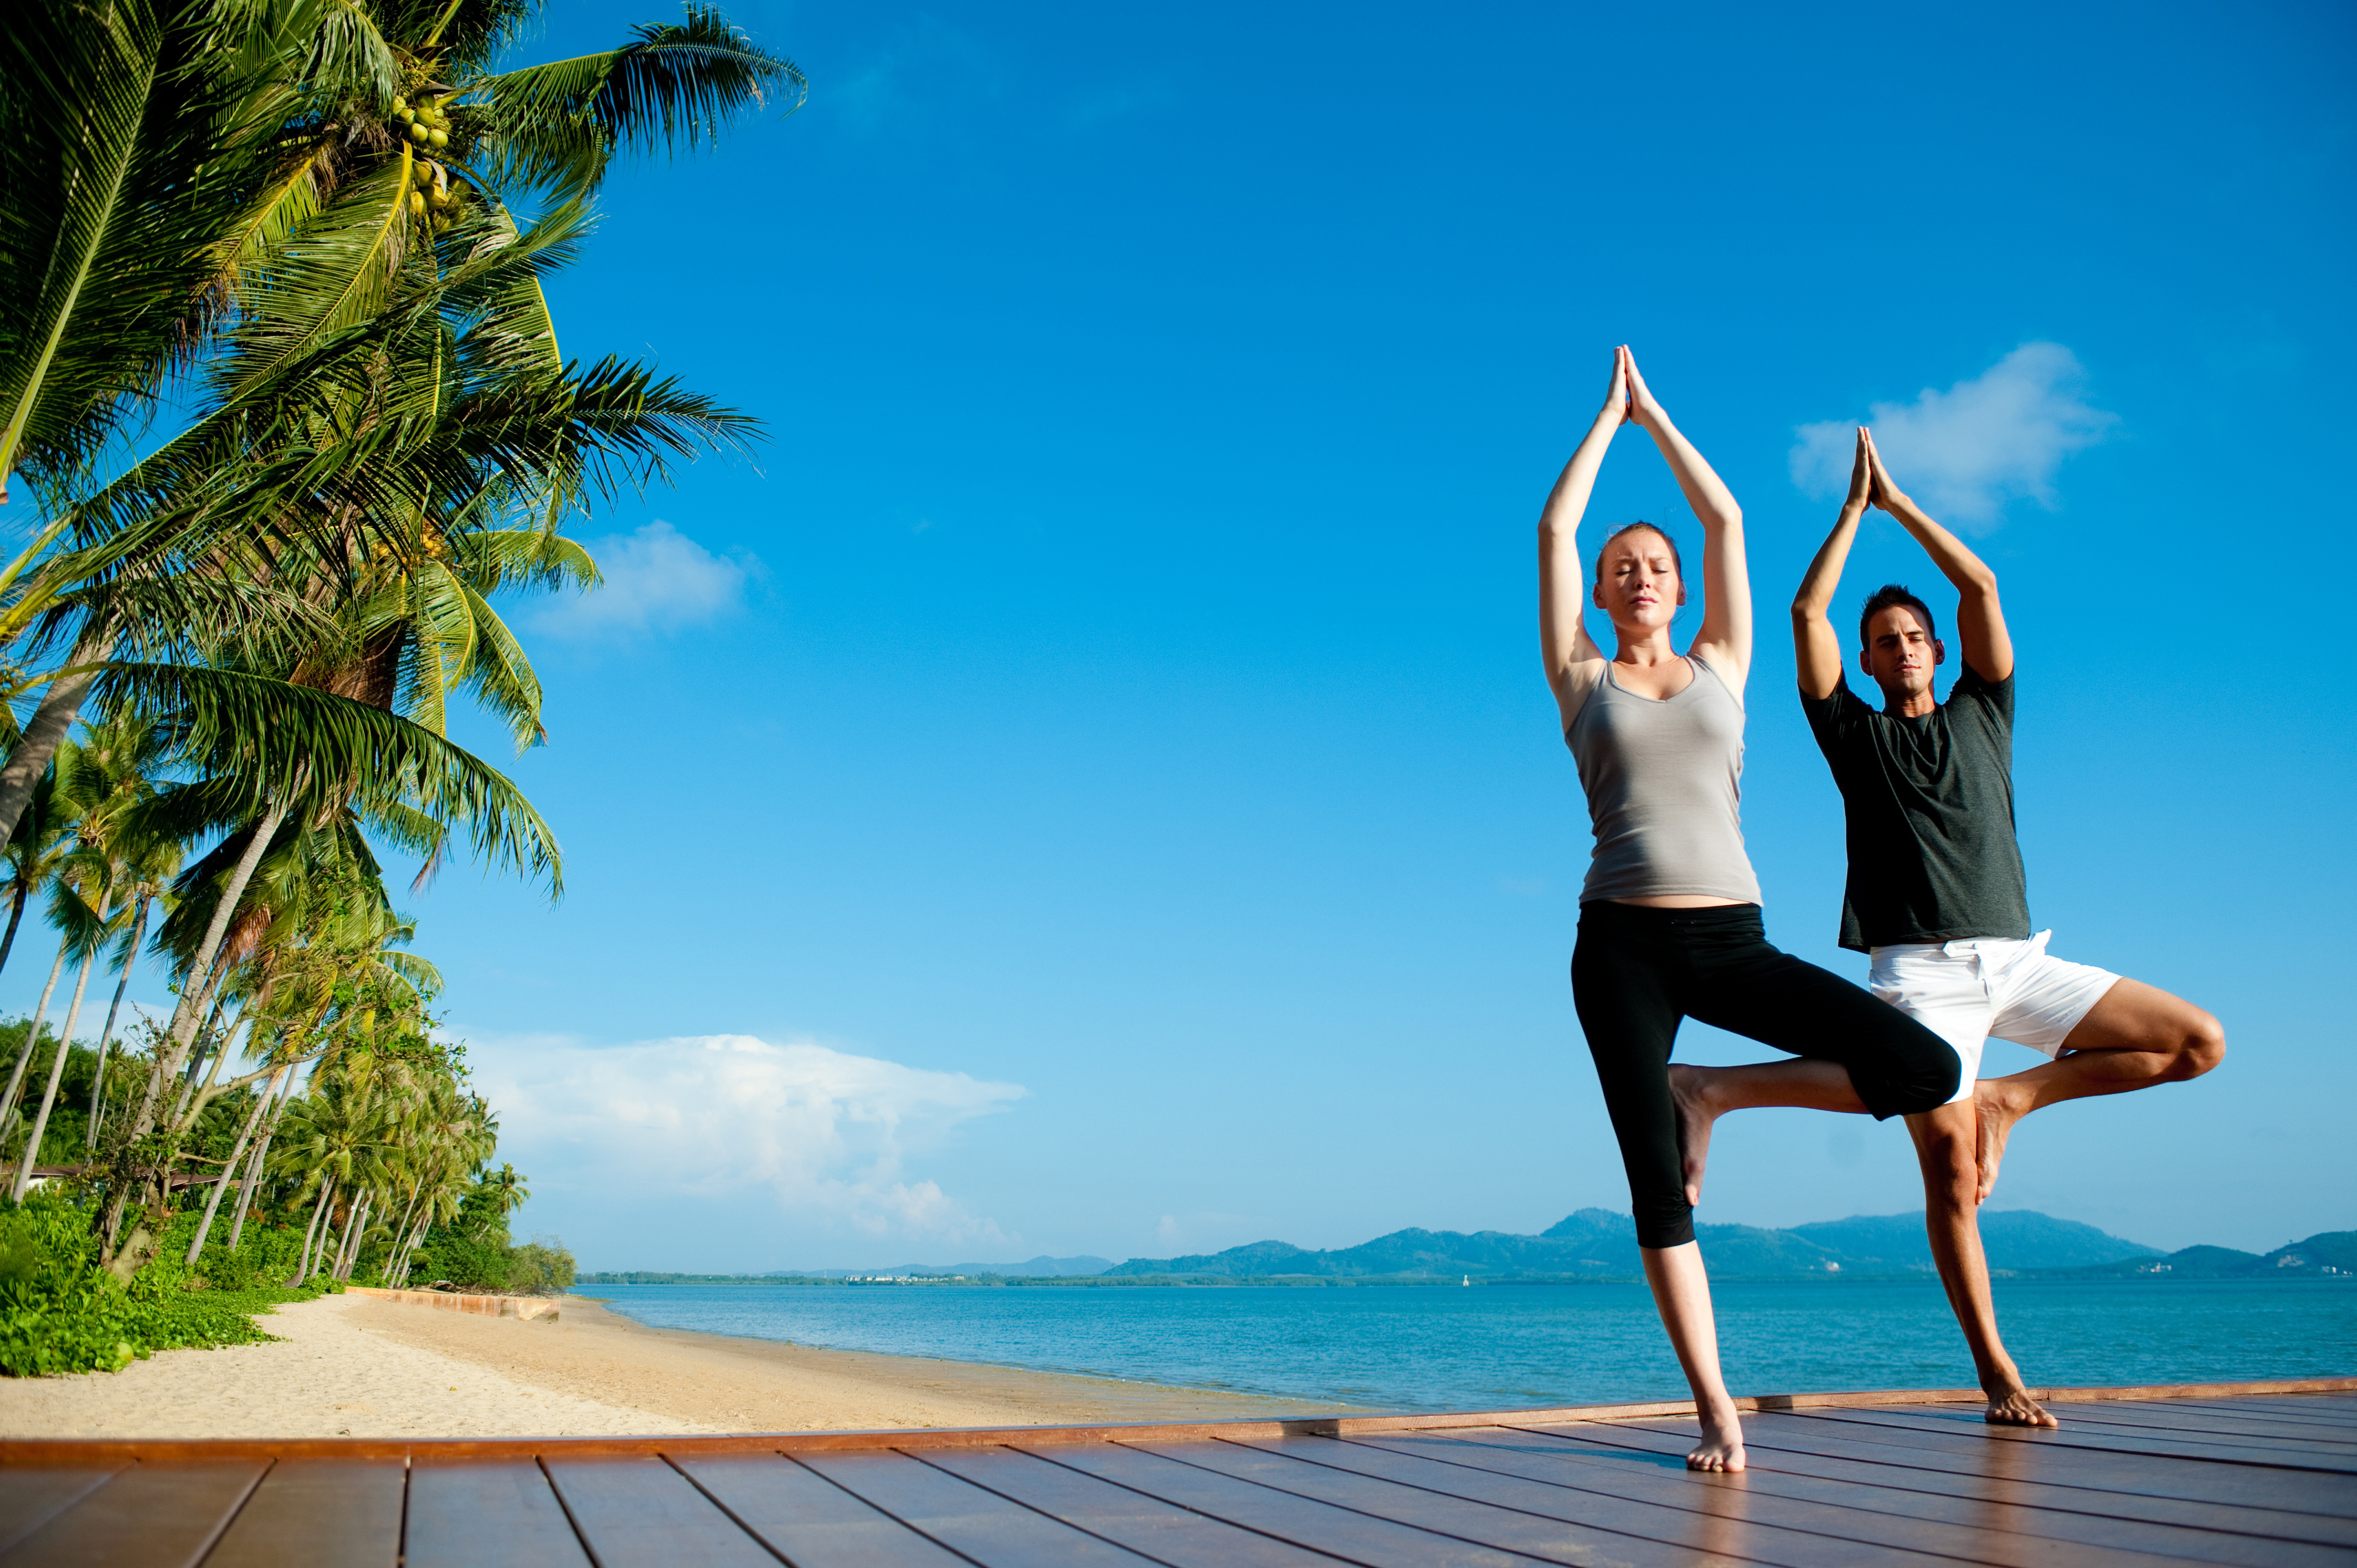 An attractive young woman and man doing yoga on a jetty with the